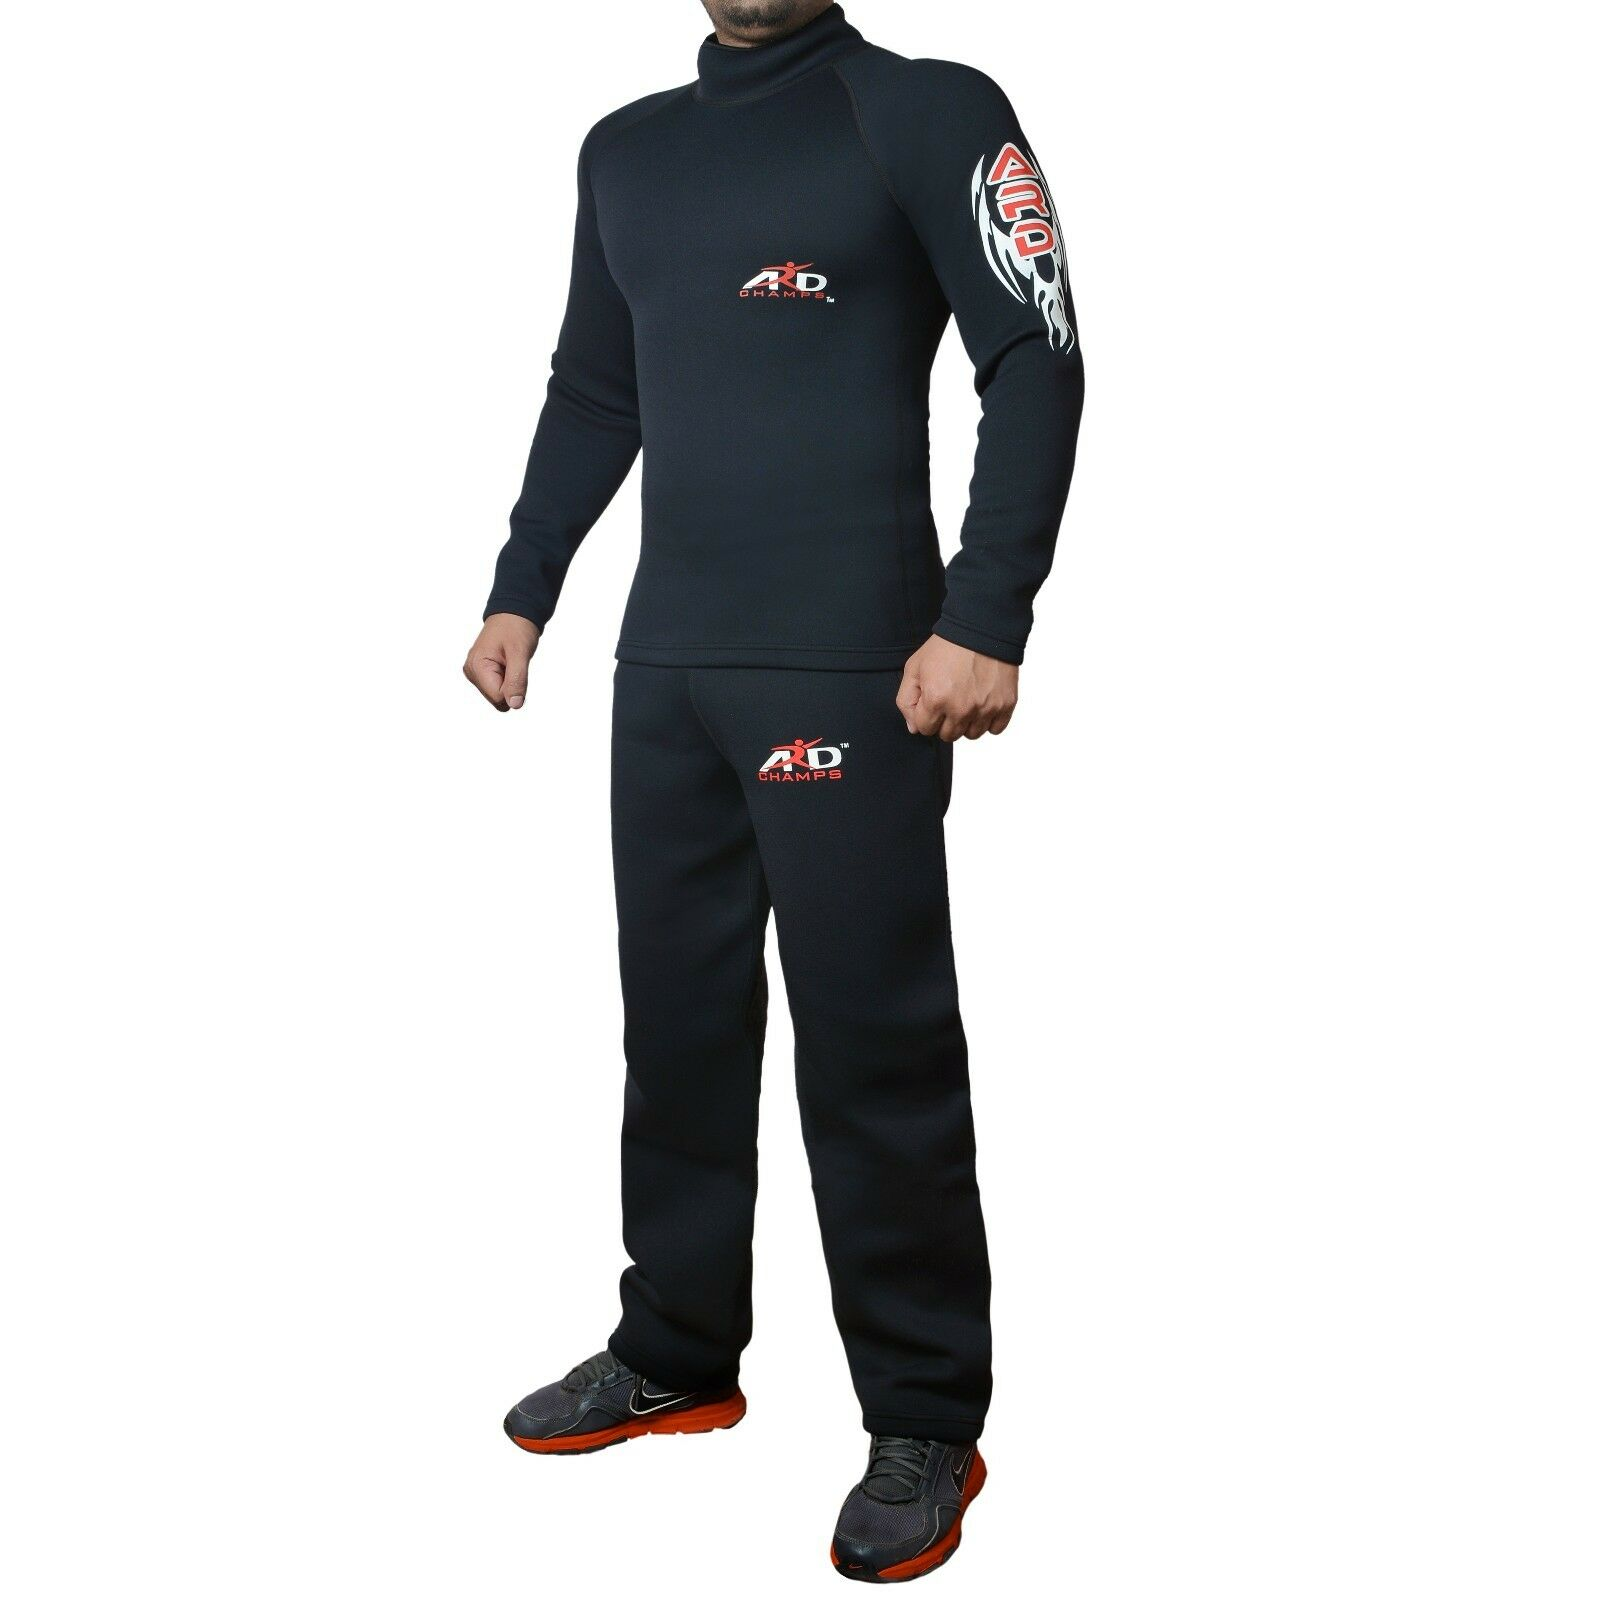 ARD CHAMPS™ Heavy Duty Neoprene Sweat Suit Sauna Exercise Gym Suit Fitness